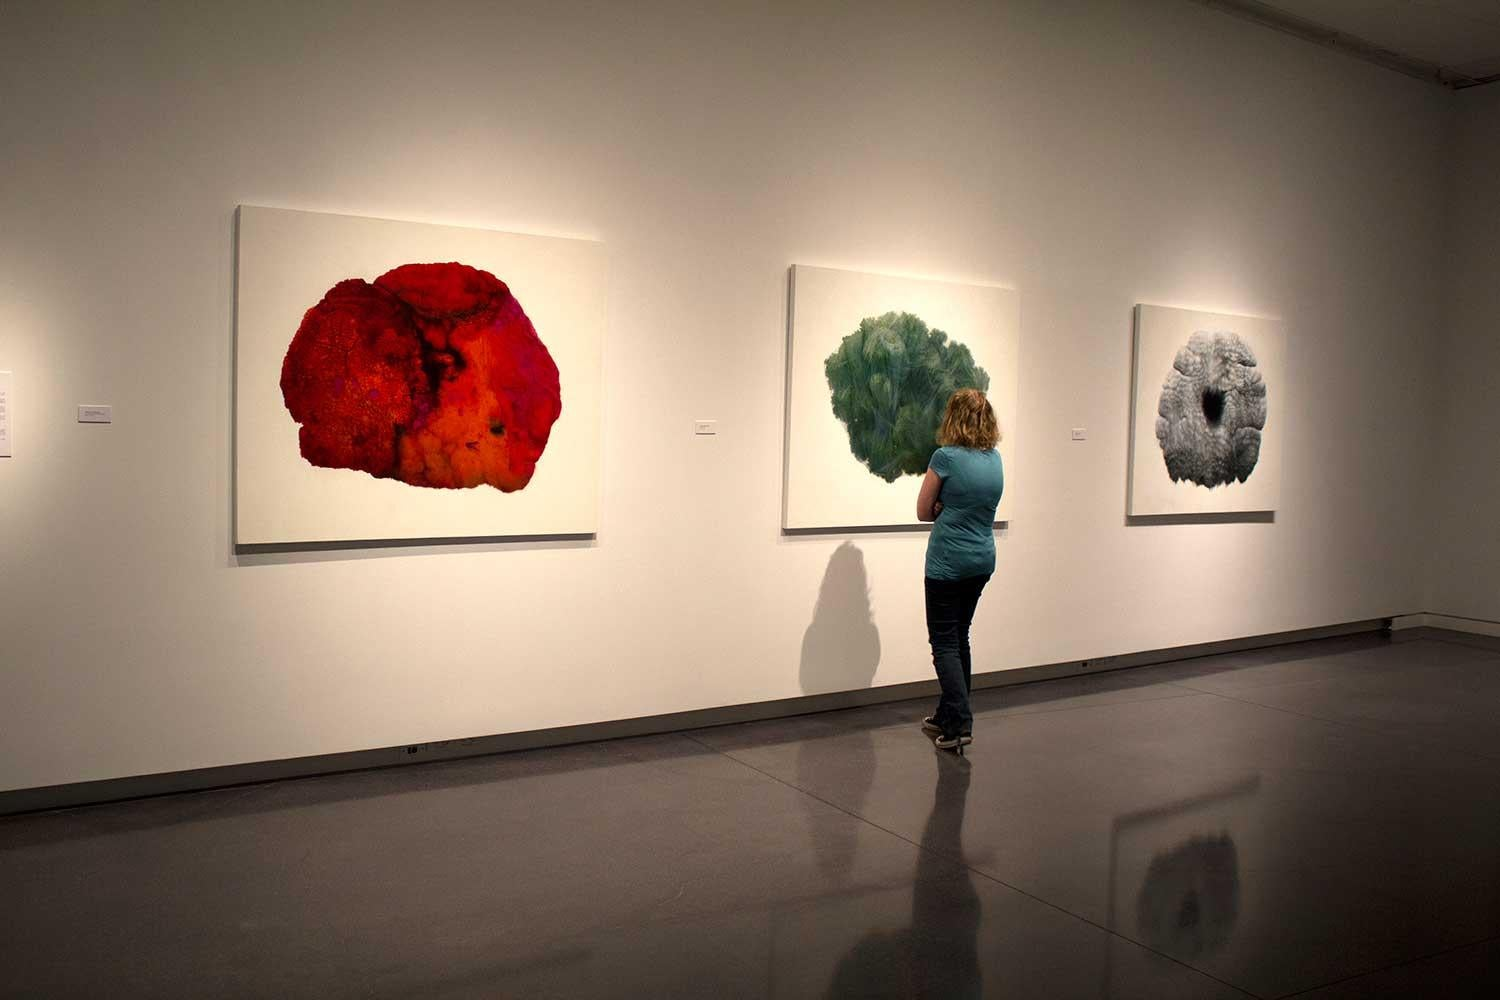 a woman stands in front of three large drawings hanging on the wall, one is red, one is green, on is grey